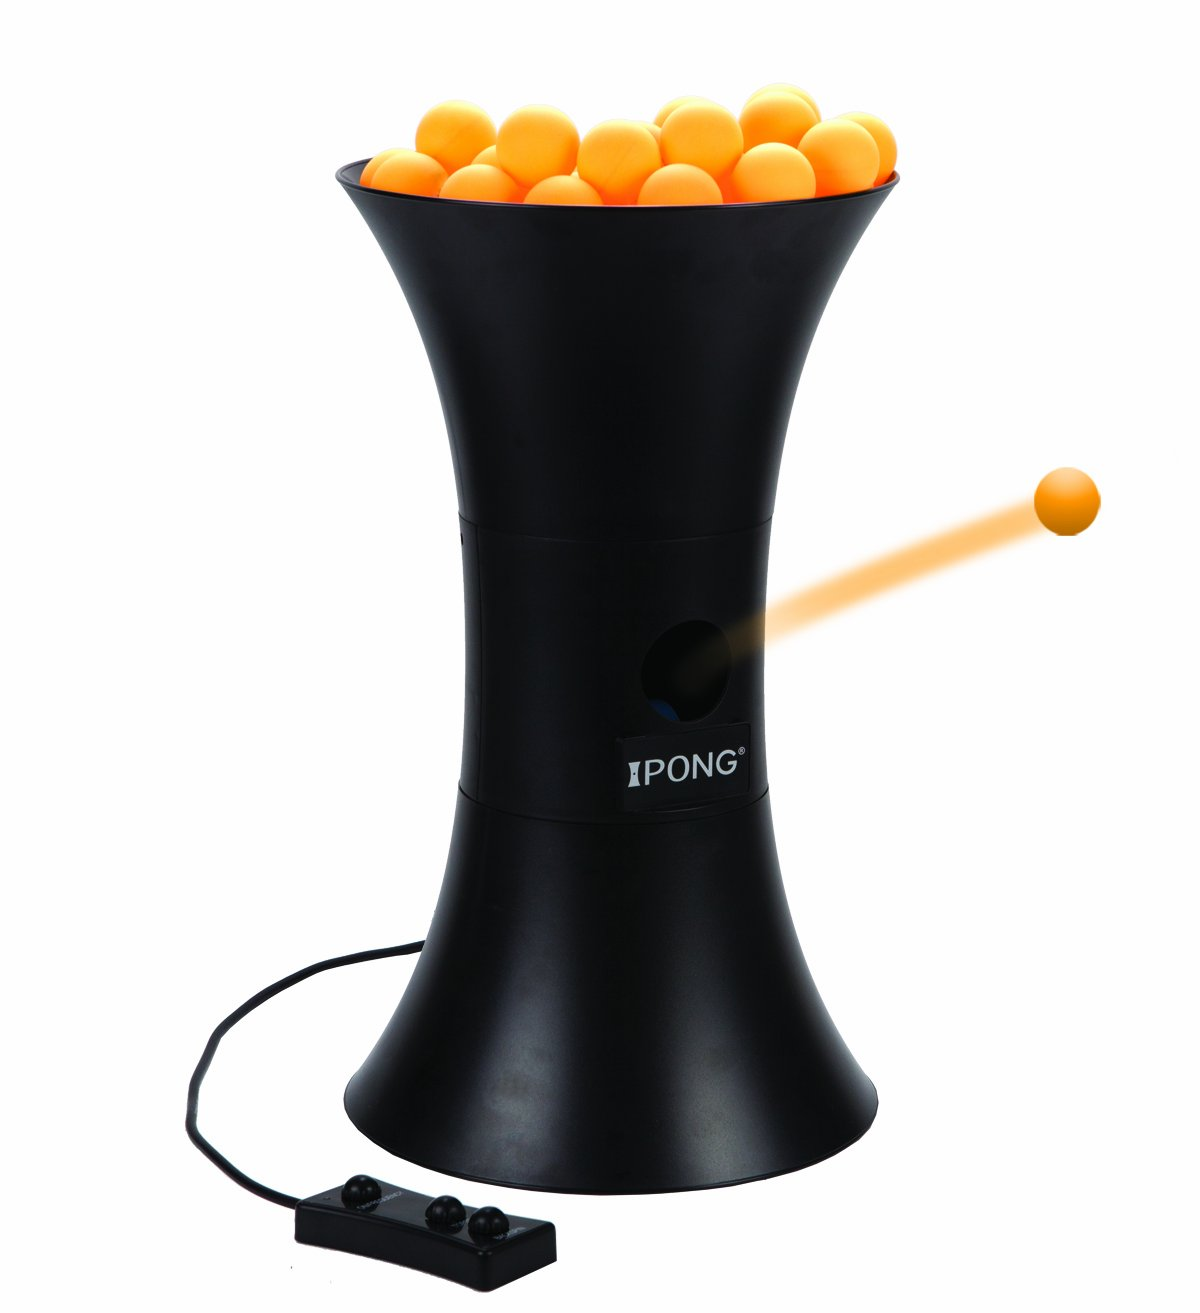 iPong Original Table Tennis Trainer Robot by iPong